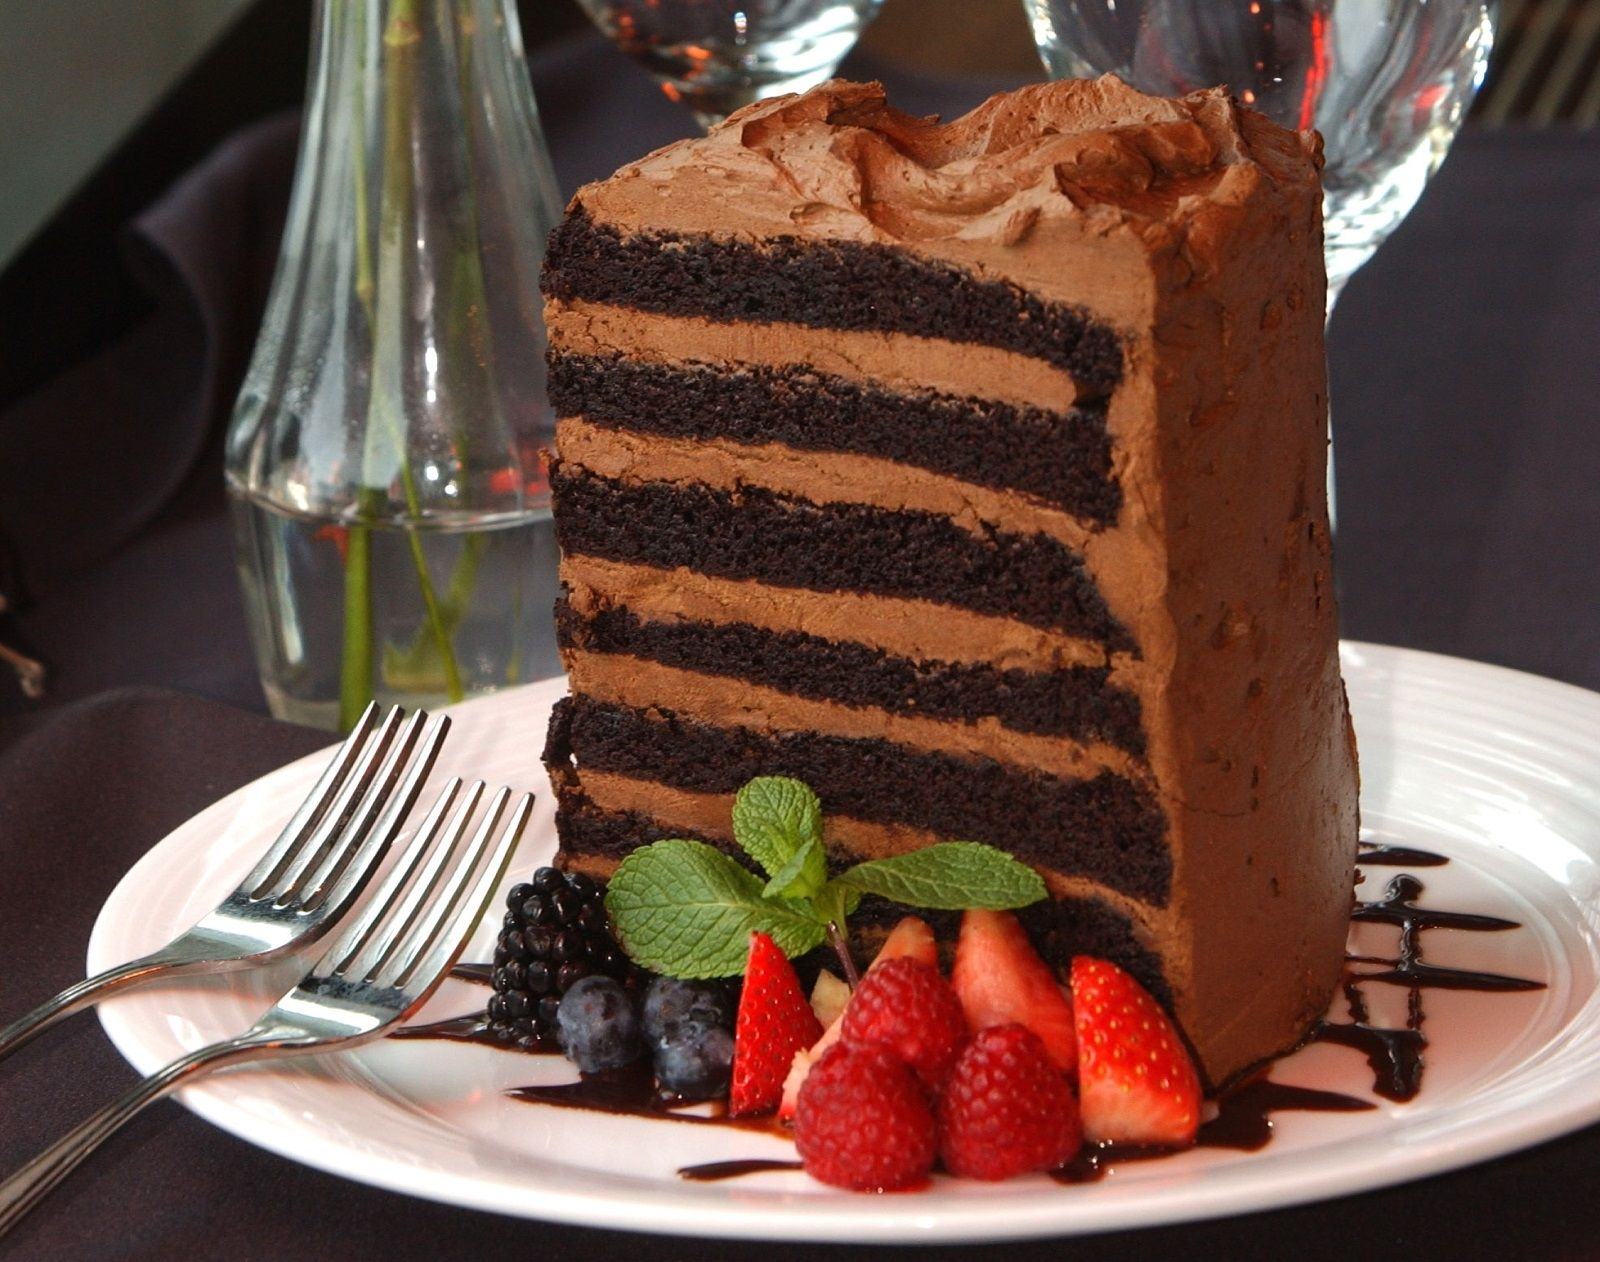 Seven-layer chocolate cake from E.B. Green's.